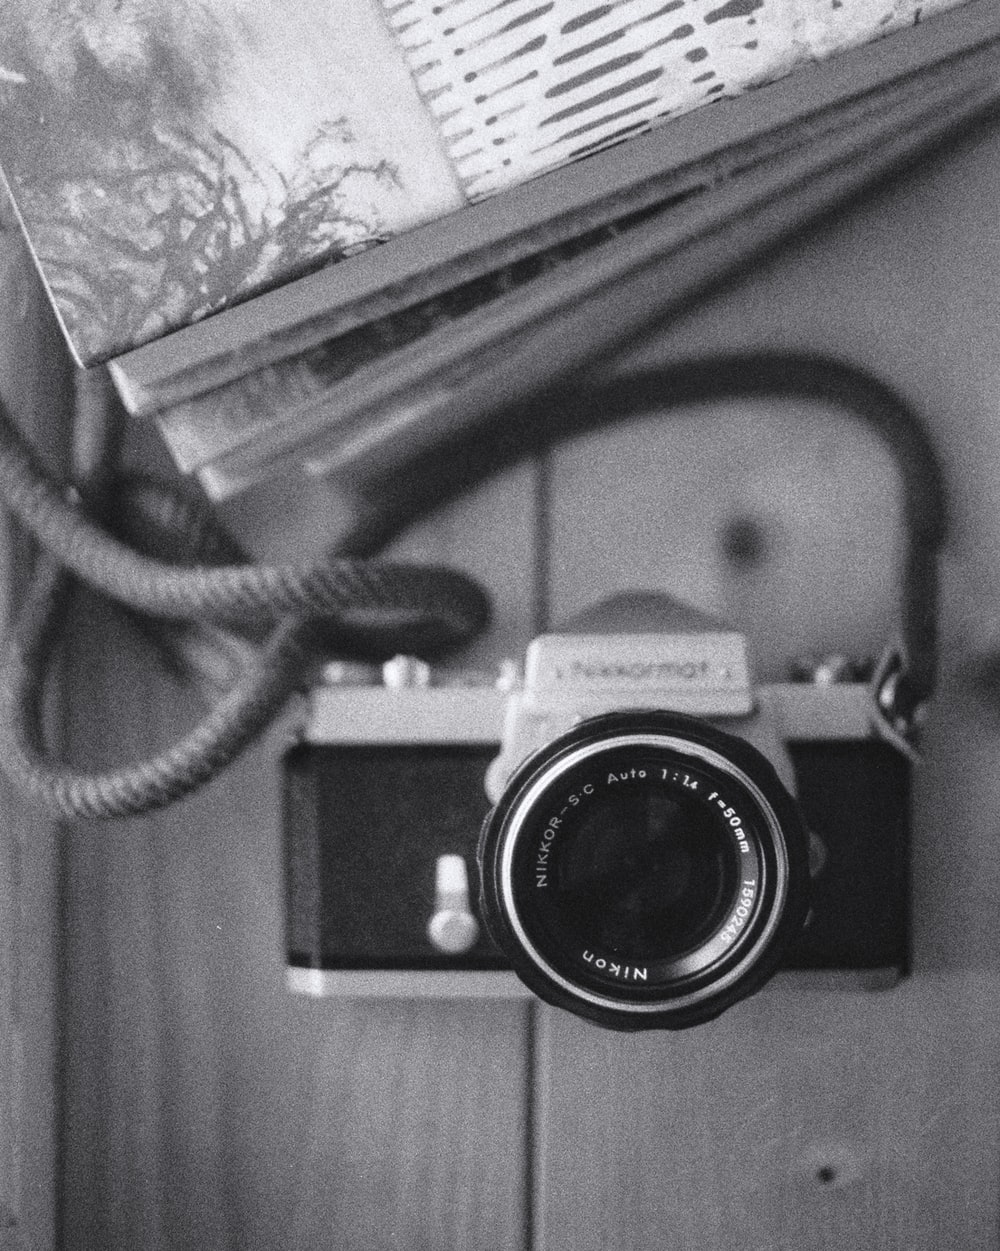 grayscale photo of a camera on a book